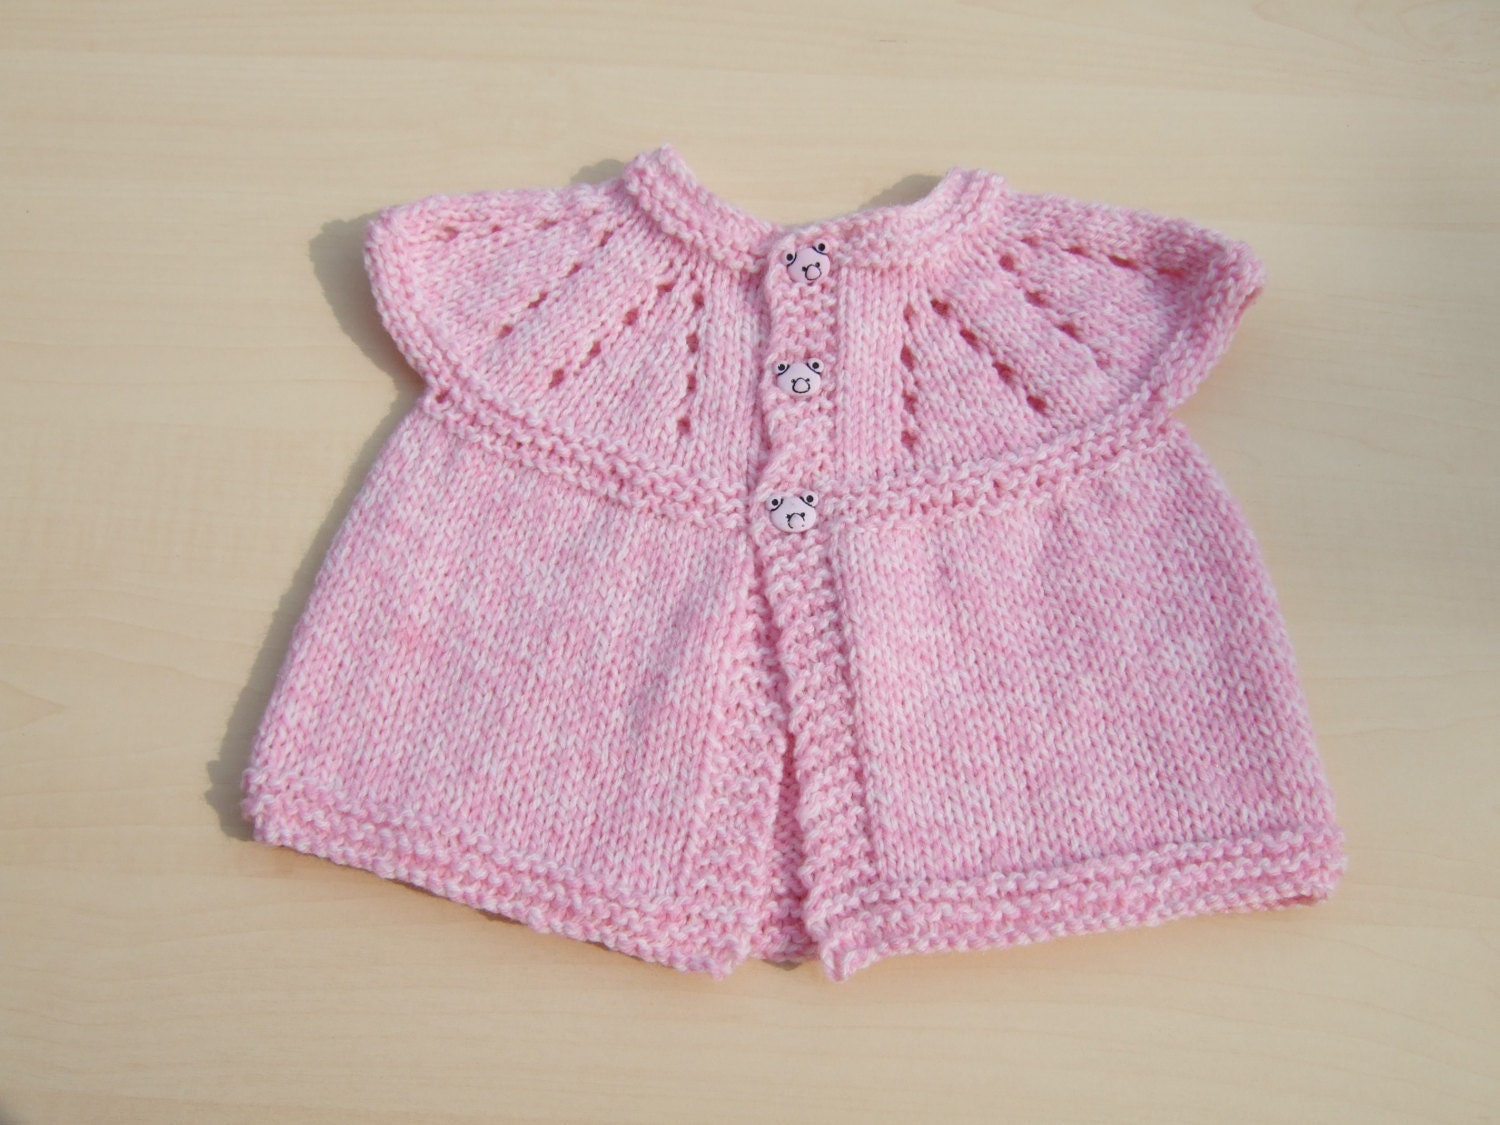 Baby sleeveless cardigan hand knitted in pink and cream mix